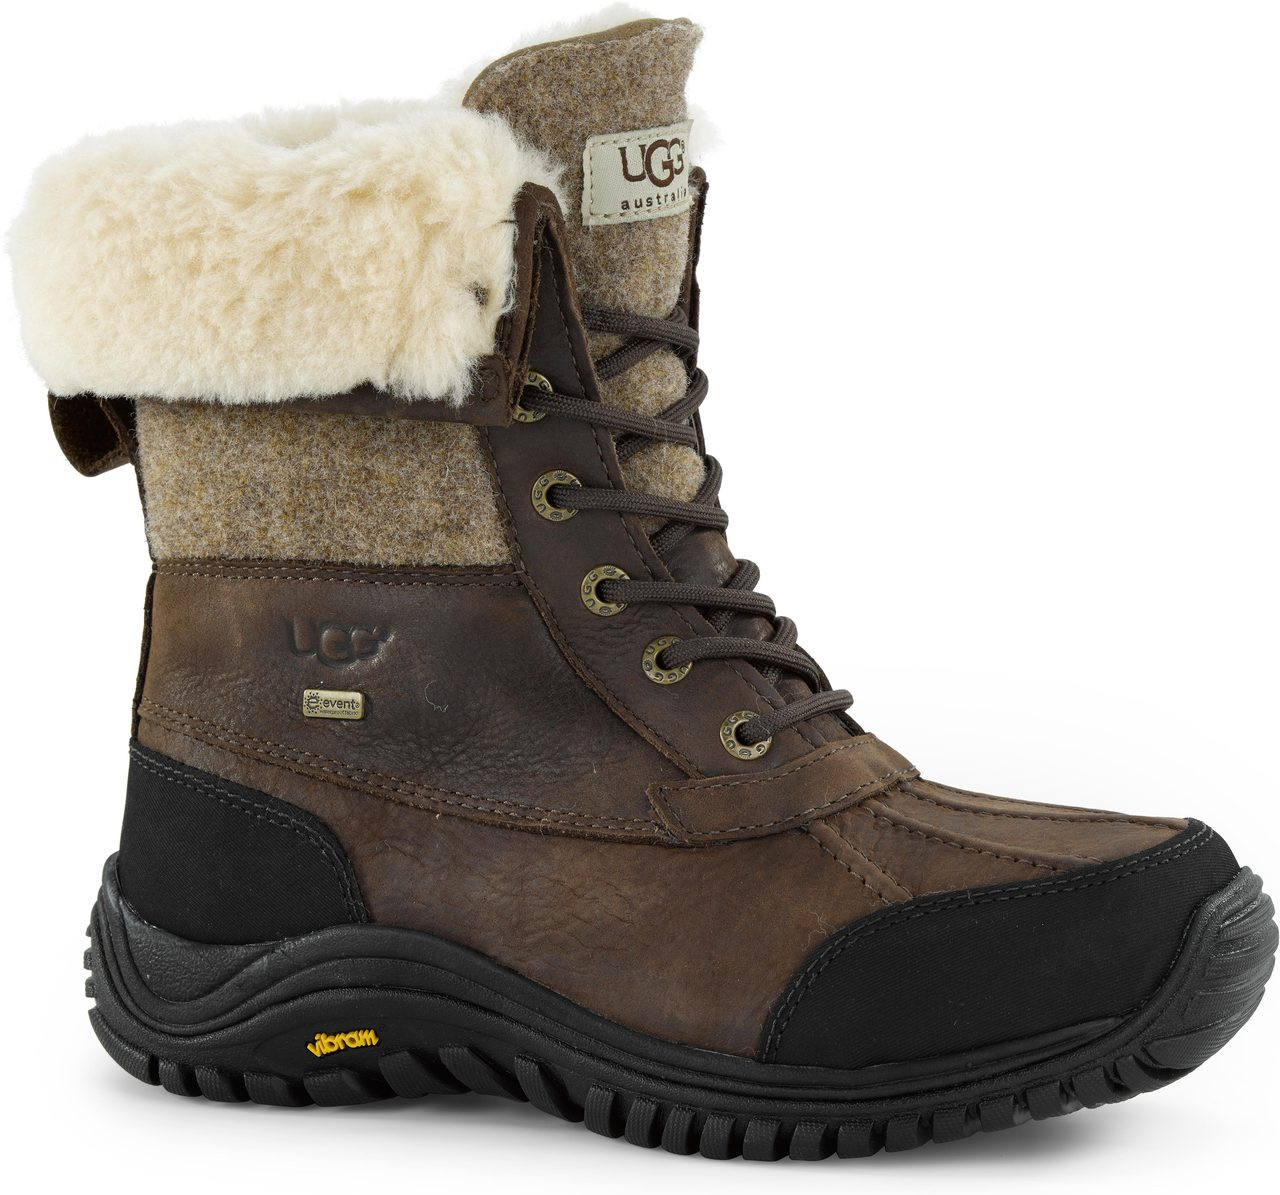 ugg adirondack boots for women